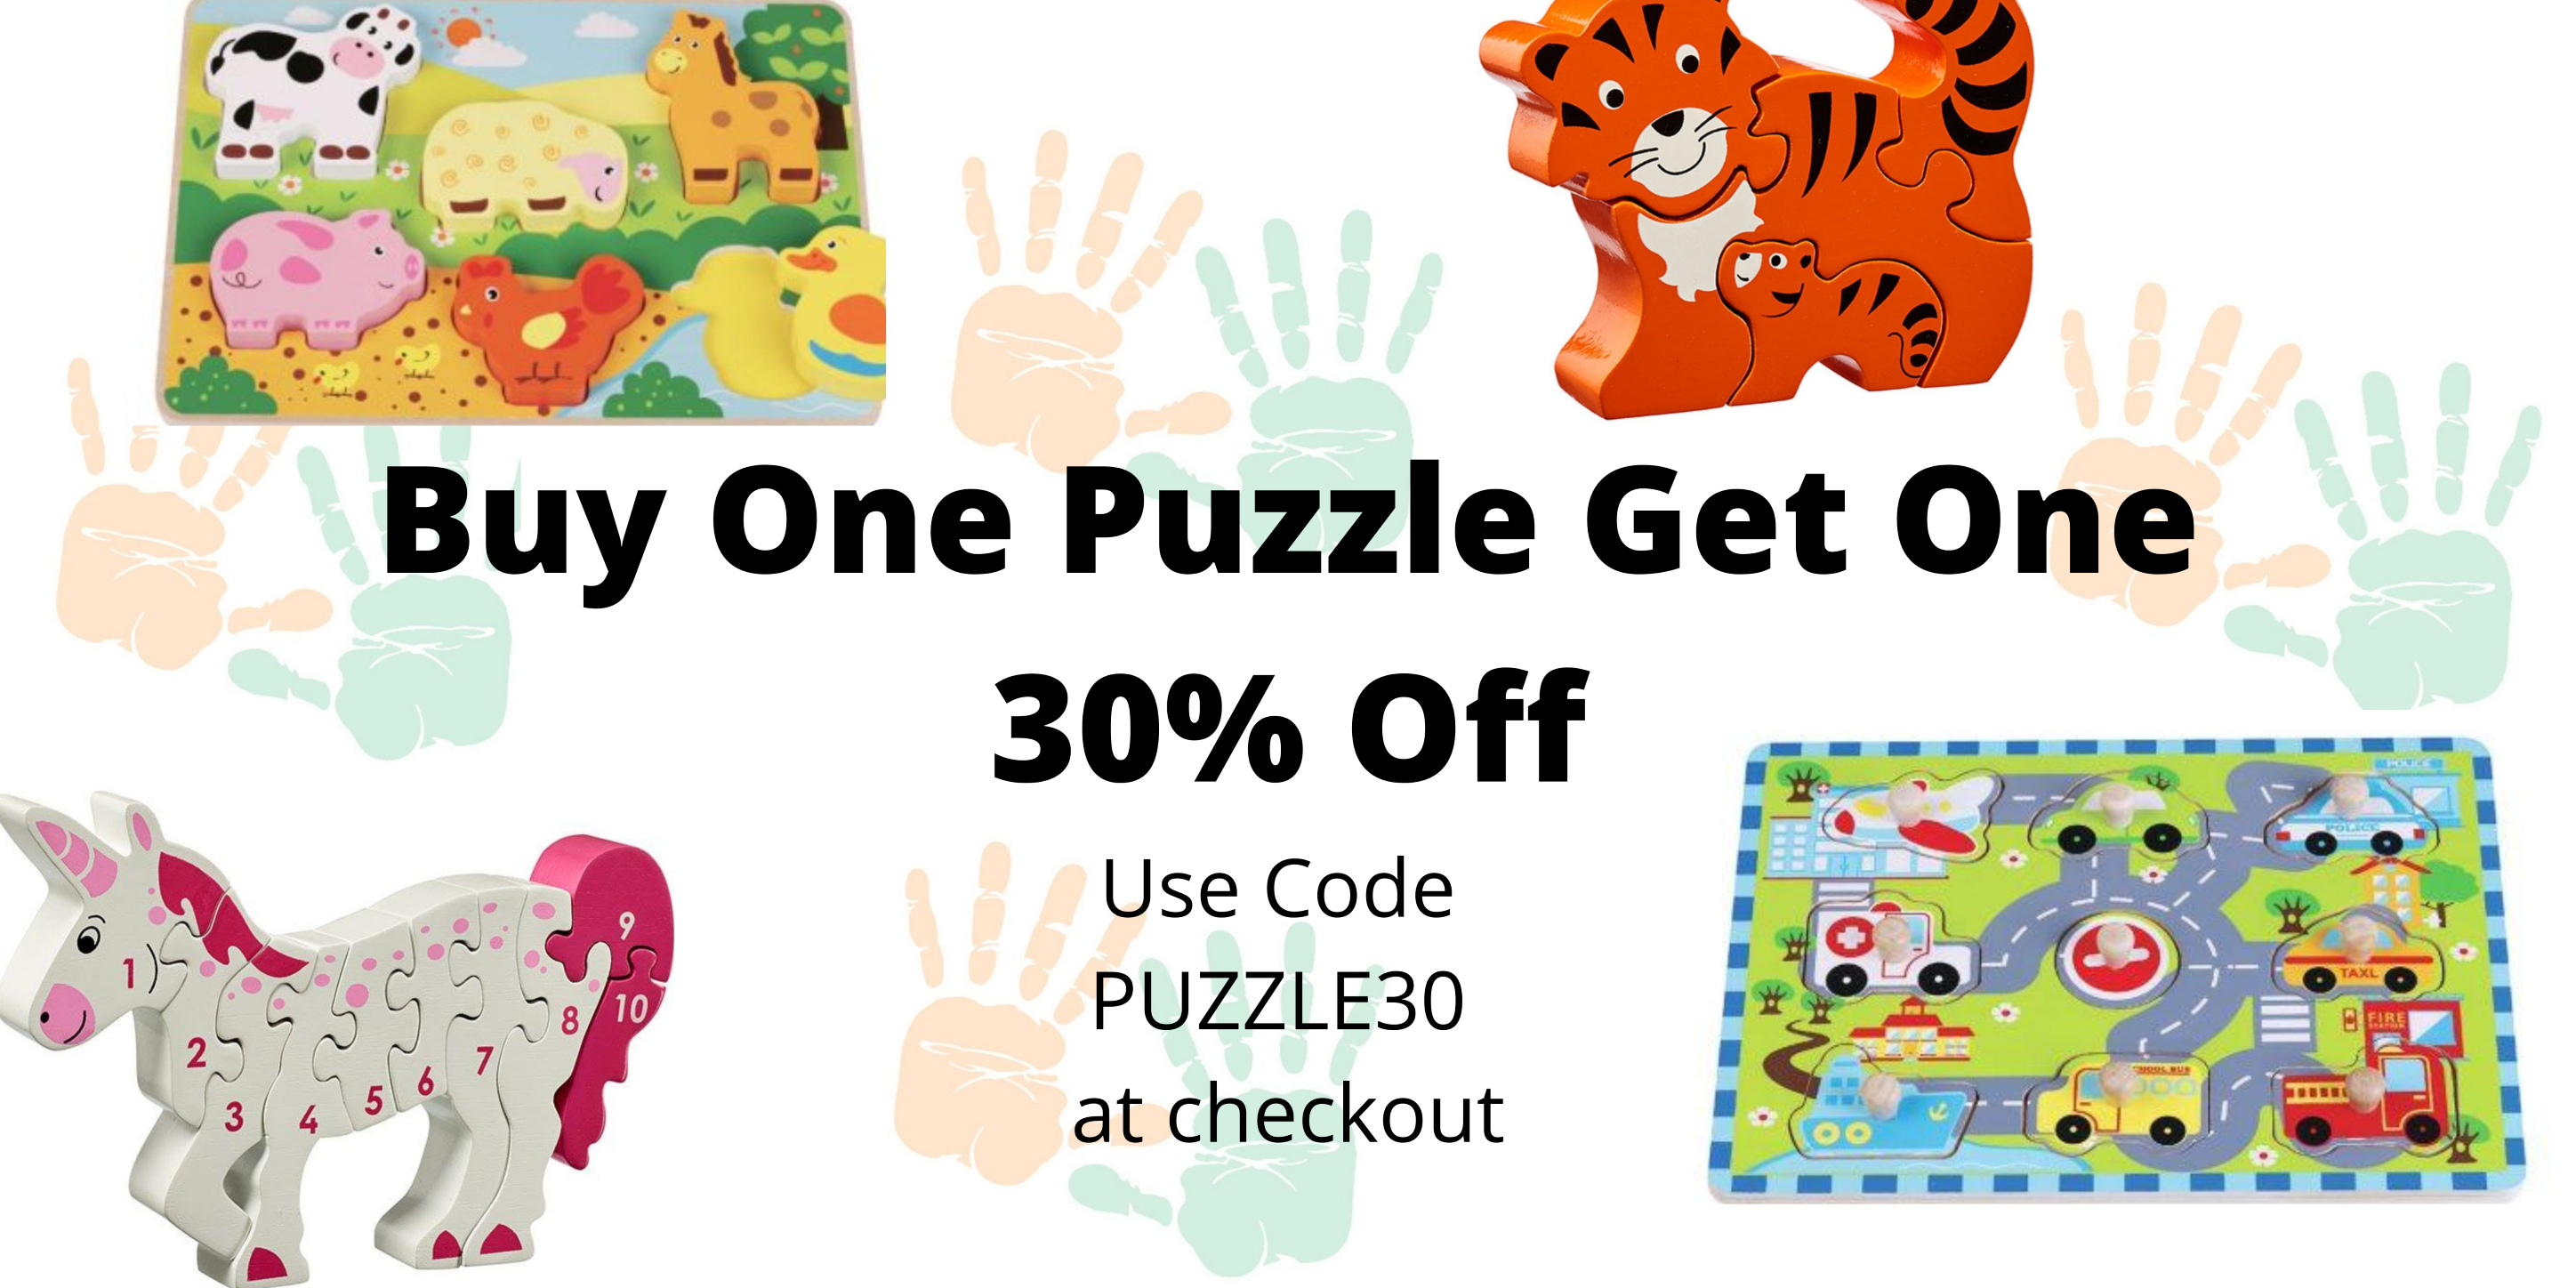 wooden puzzles for toddlers and babies, number puzzles and animal puzzles.